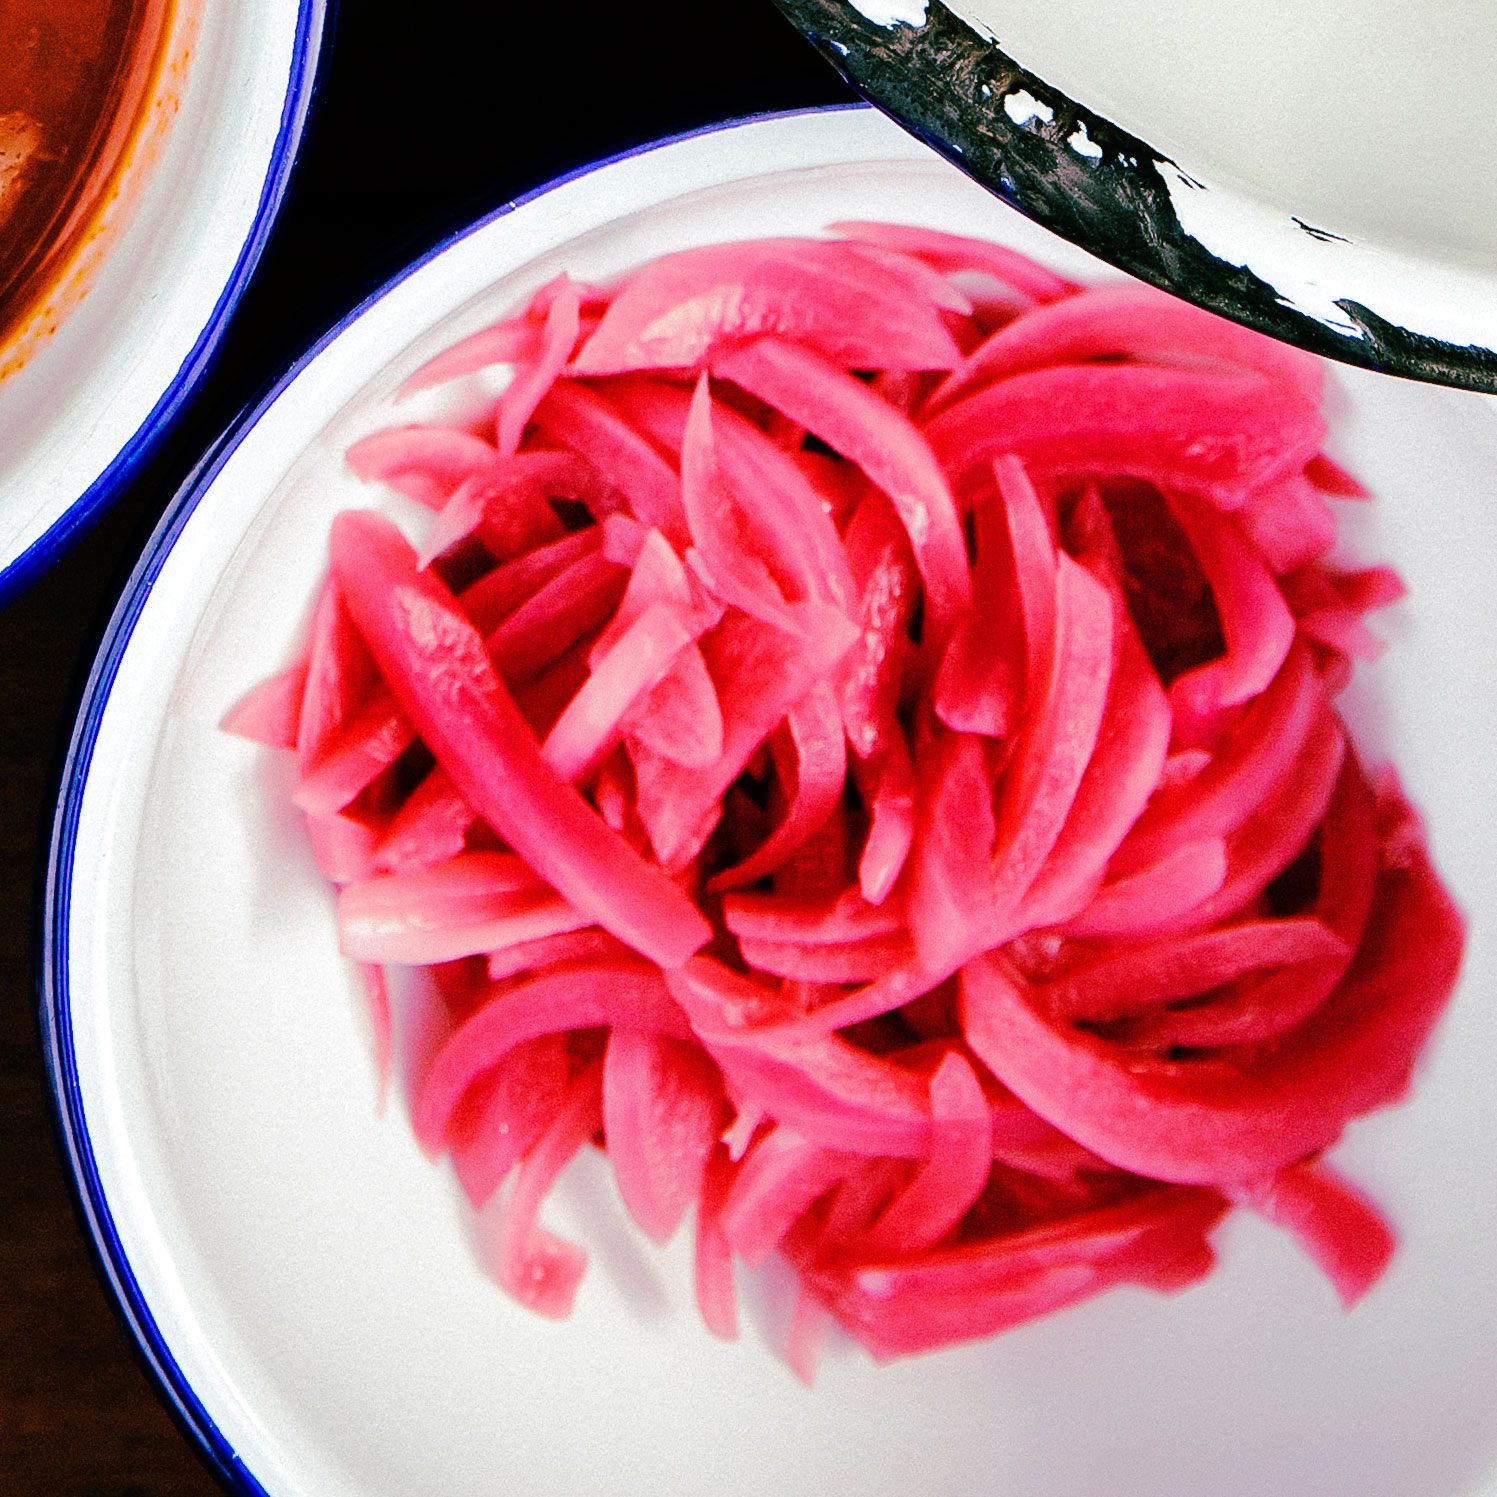 su-Pickled Red Onions Image